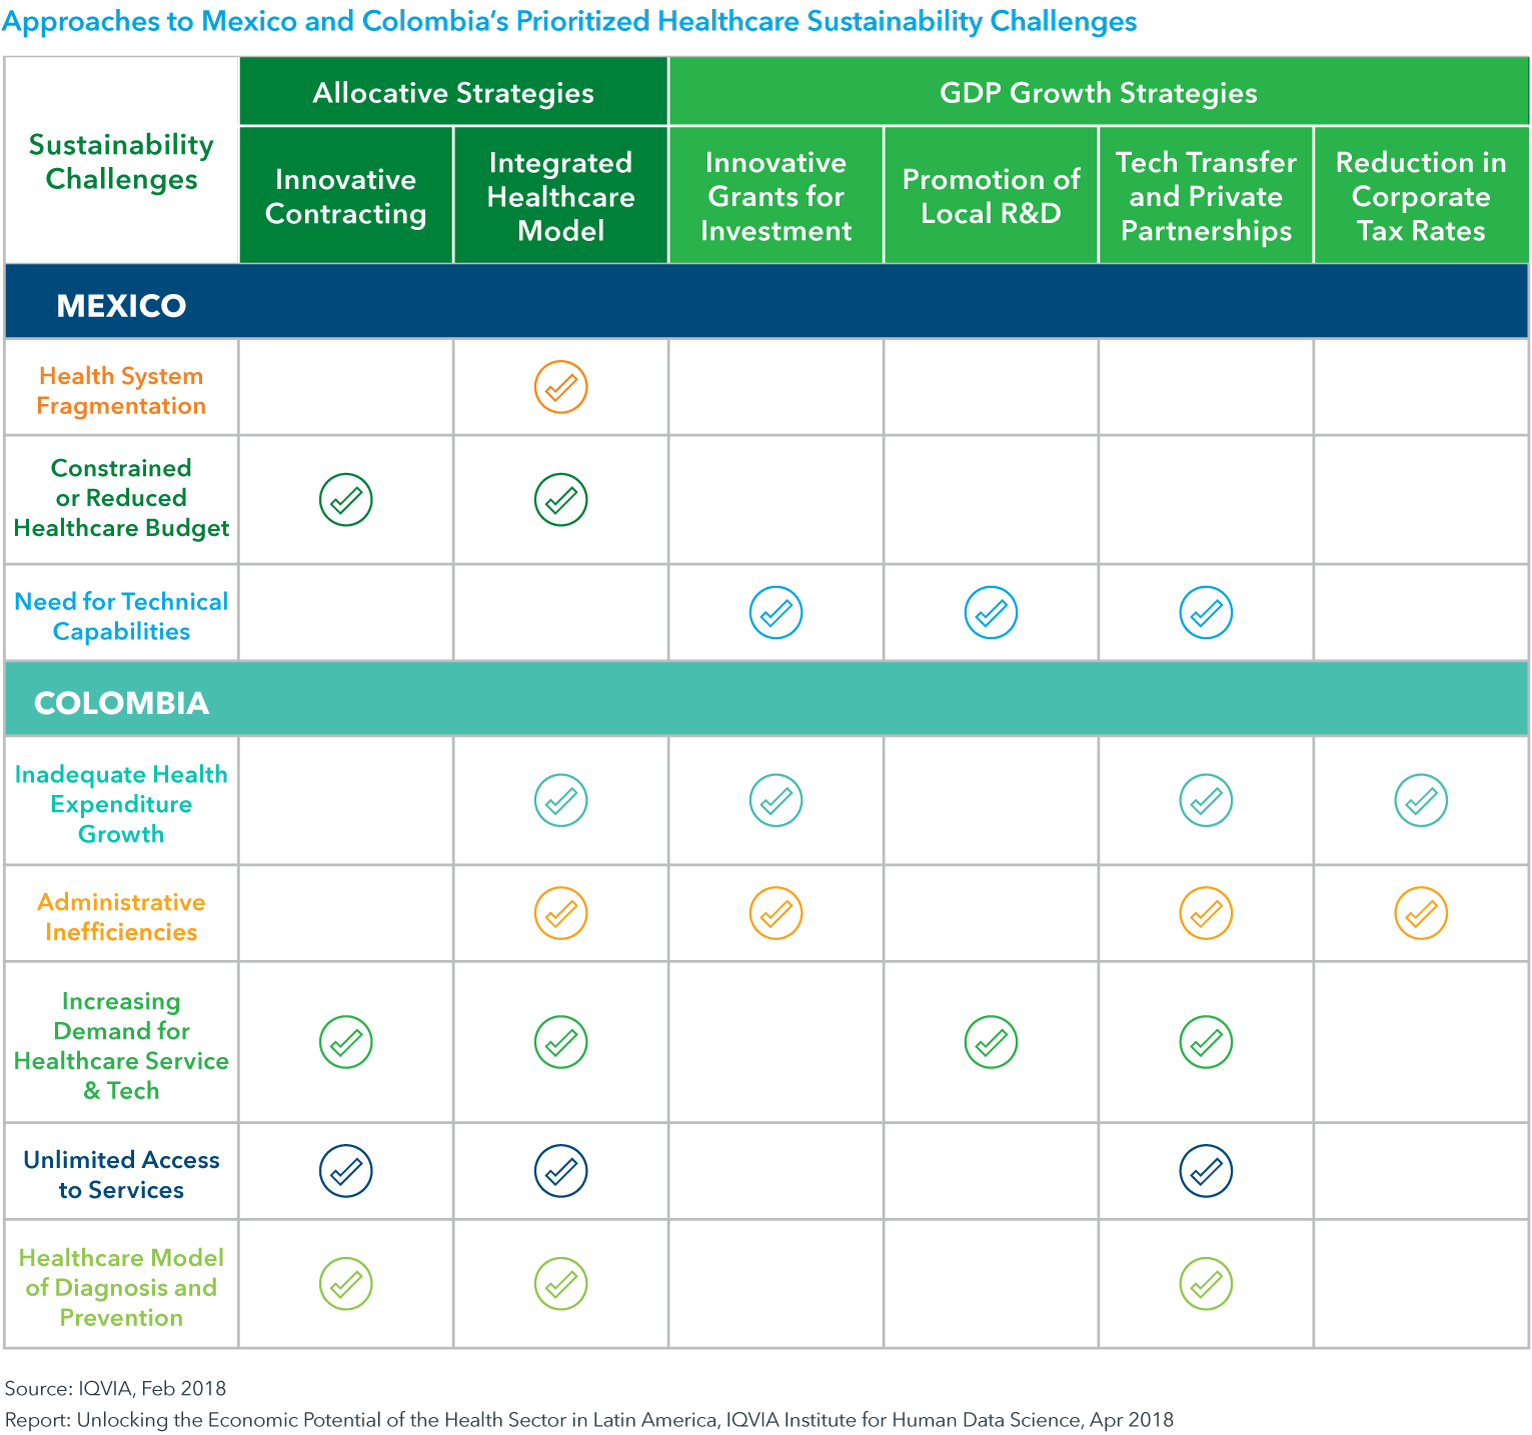 Chart 8: Approaches to Mexico and Colombia's Prioritized Healthcare Sustainability Challenges